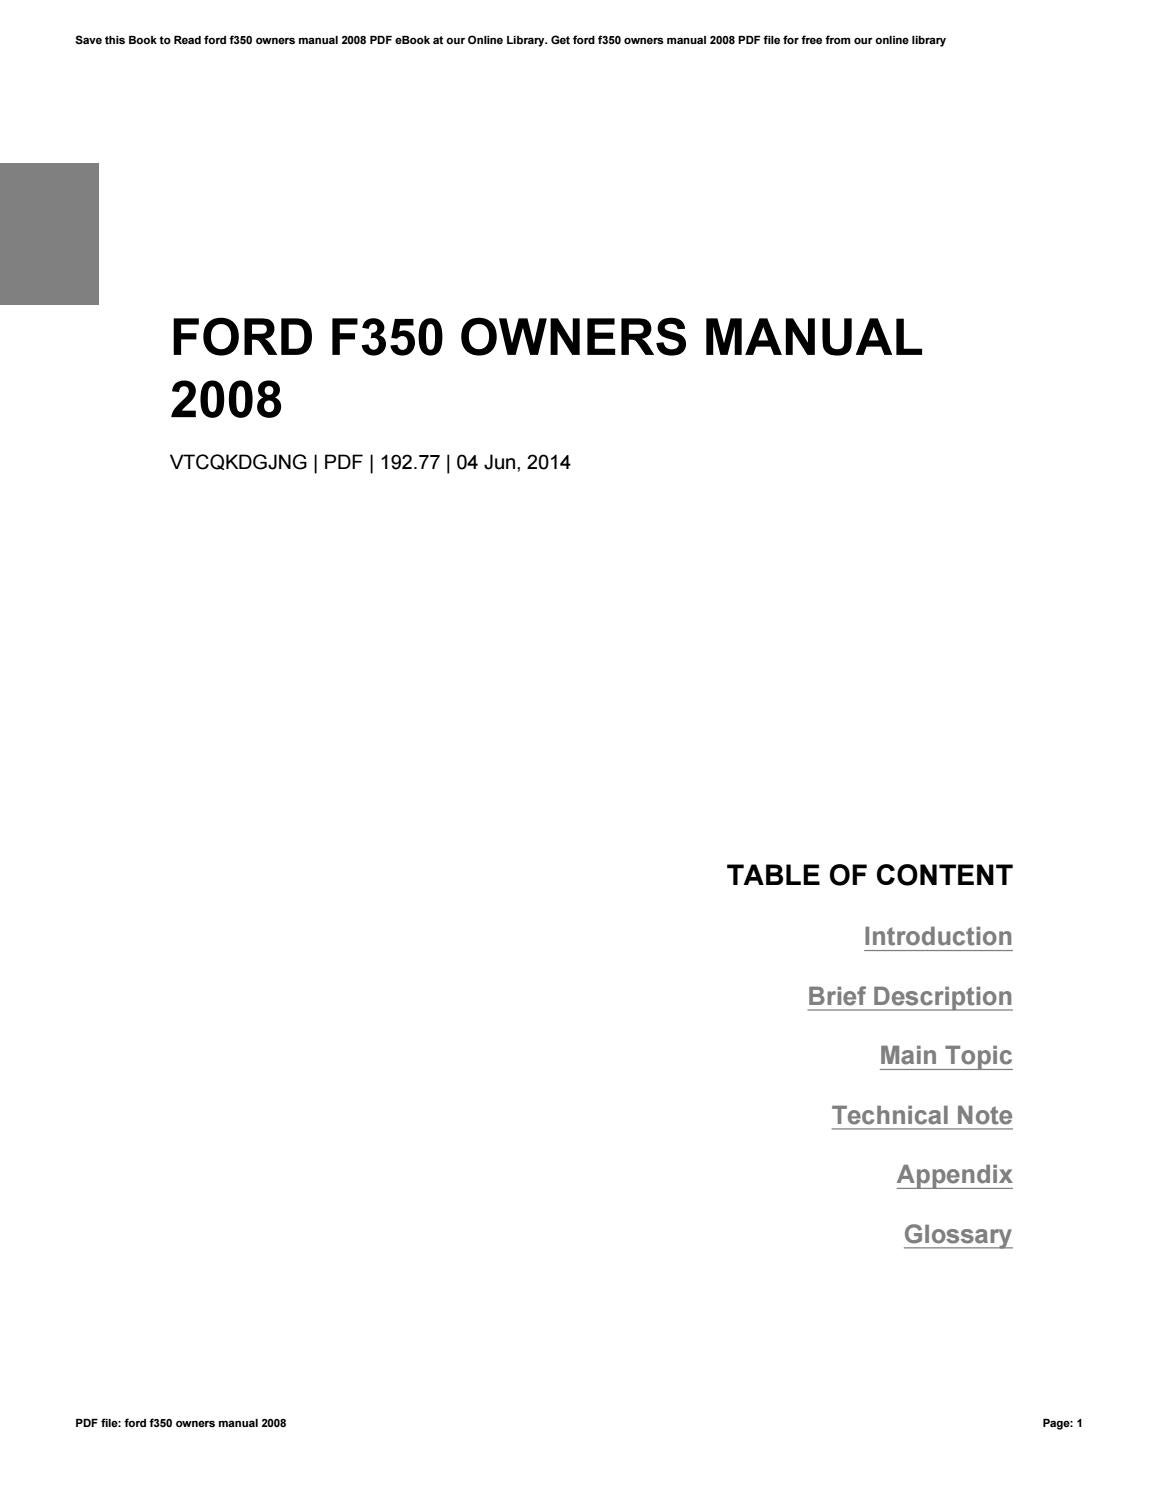 ford f350 owners manual 2008 by robertlong12901 issuu rh issuu com 2008 ford f350 owners manual fuse box 2008 ford f350 6.4 owners manual